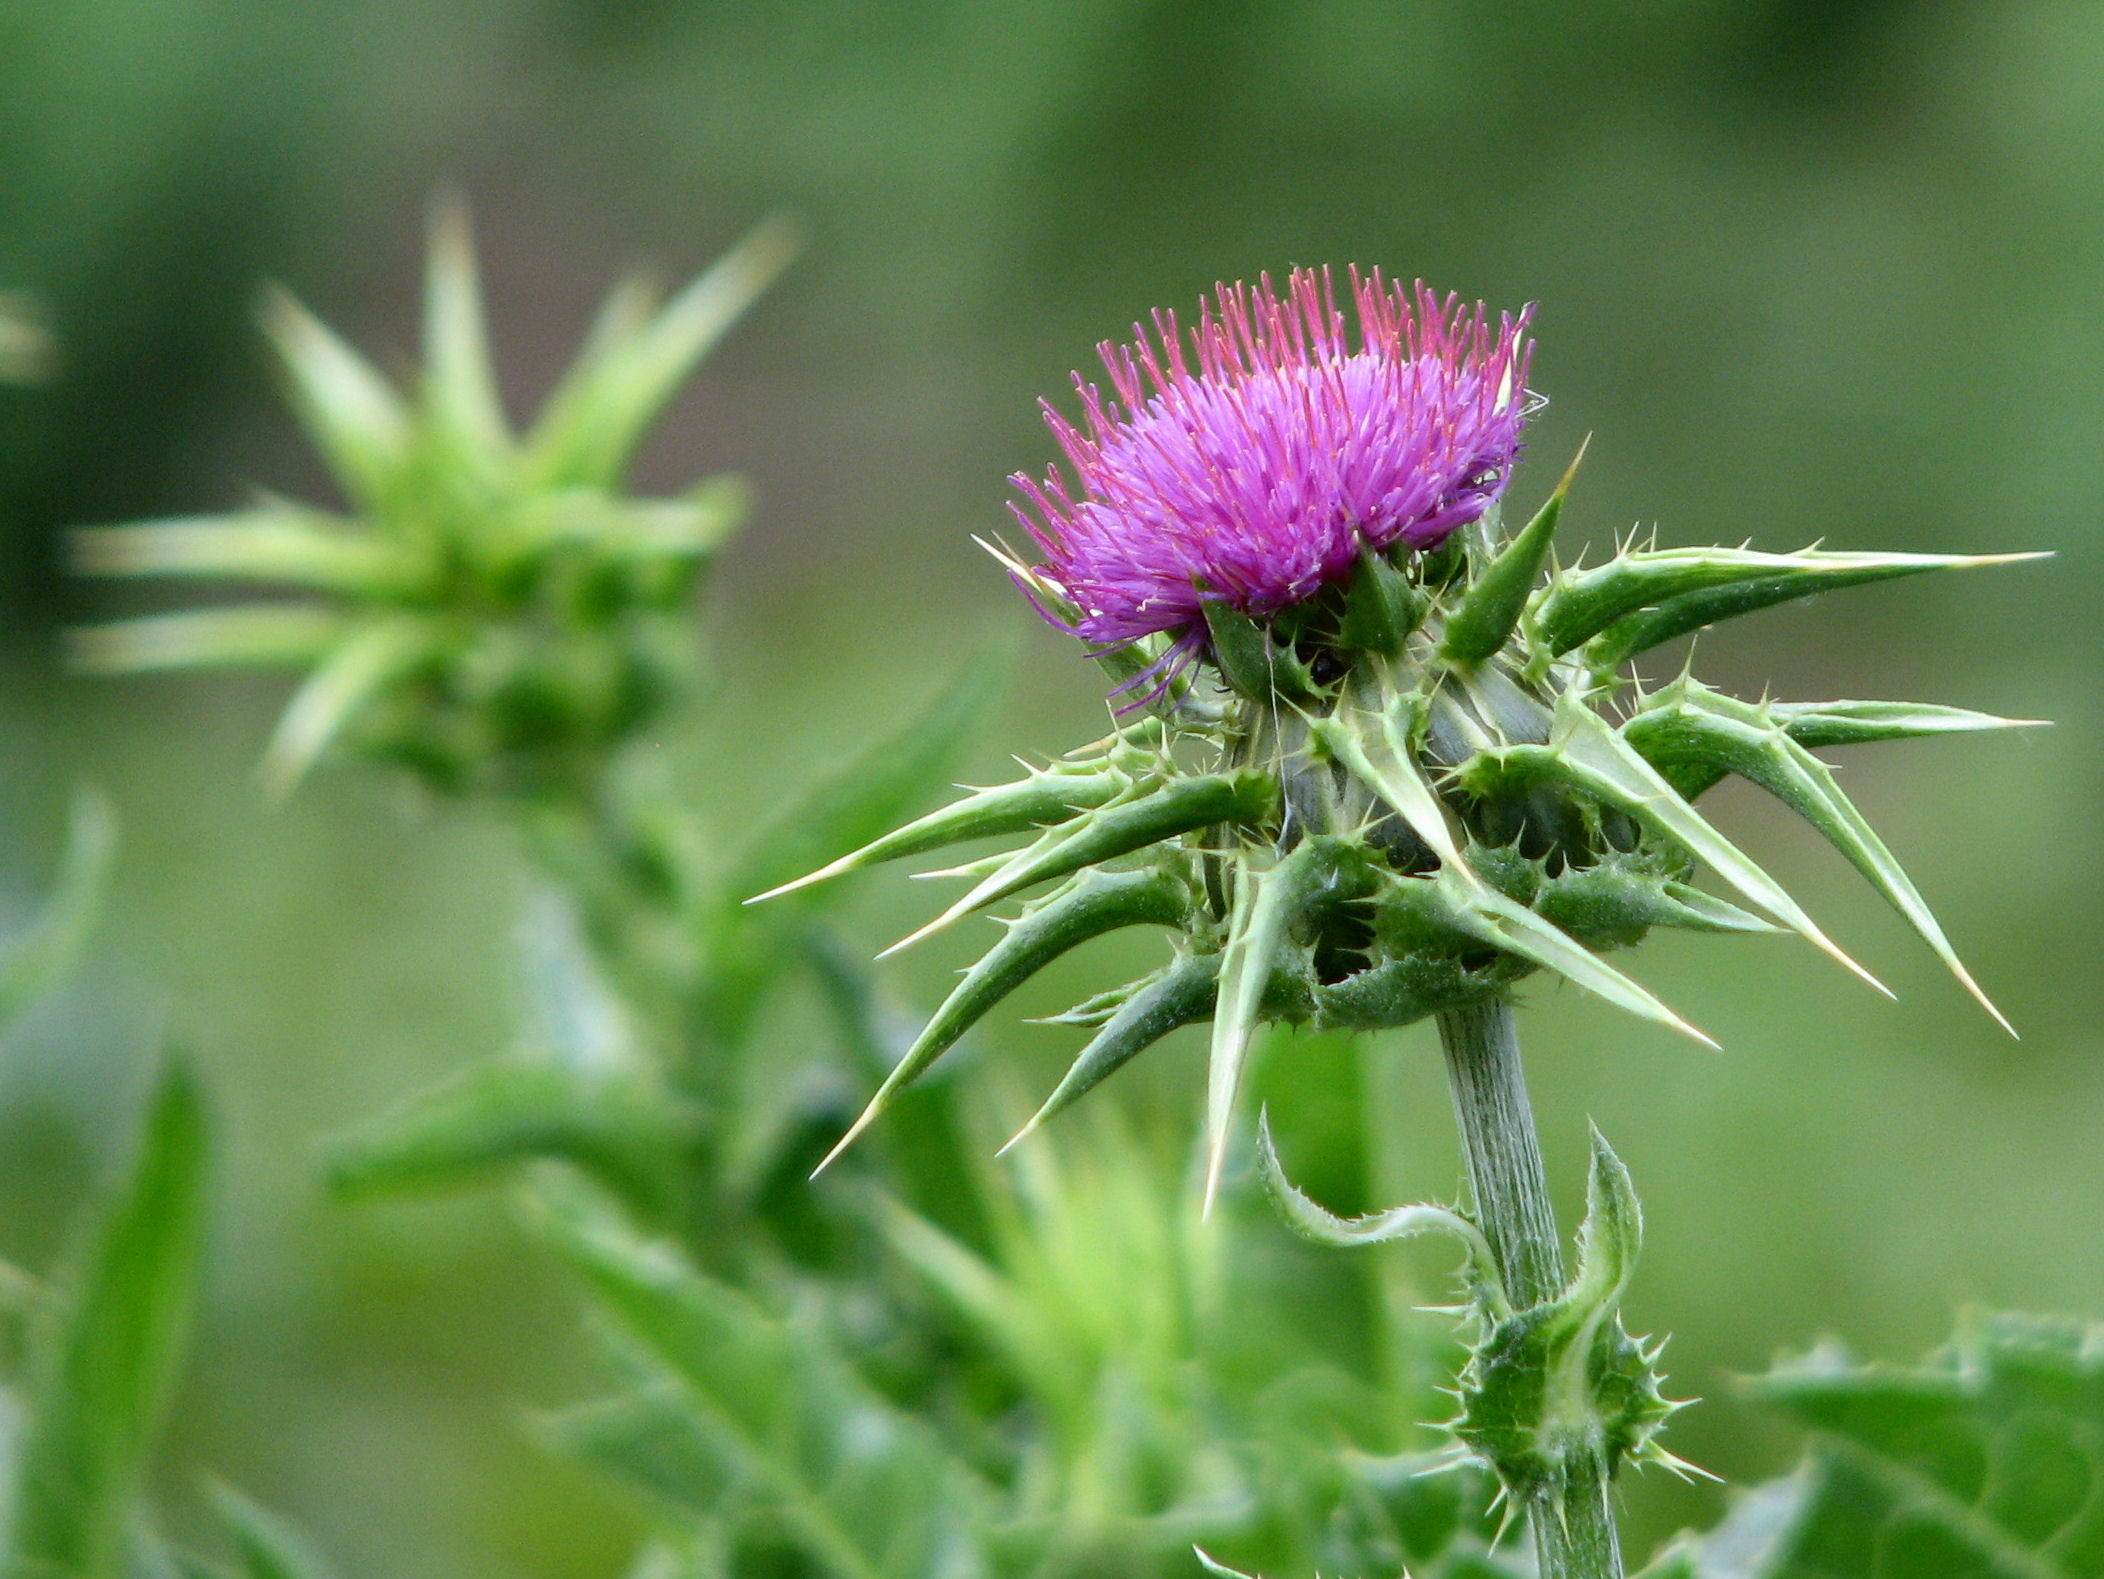 Carduus Marianus , commonly known as Milk Thistle, is a common homeopathic remedy for liver ailments.